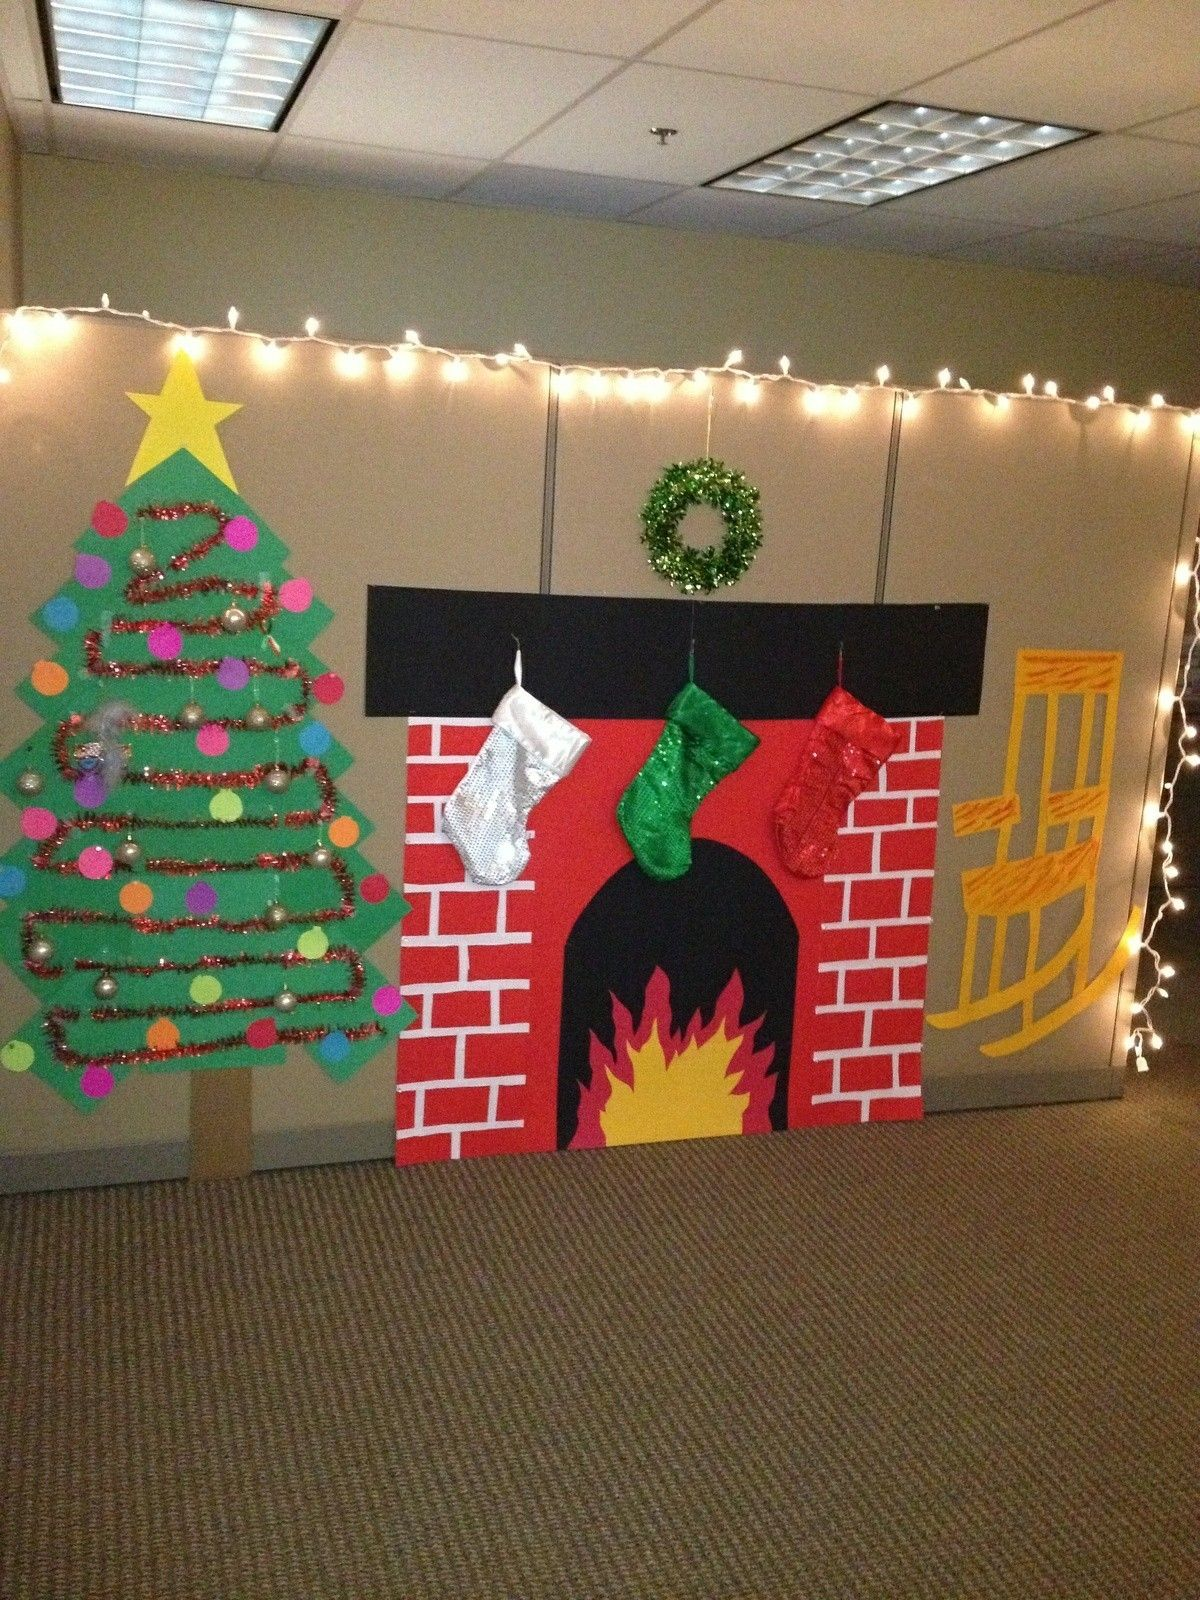 Cubicle Decorations Xmas Decorations Christmas Party Games